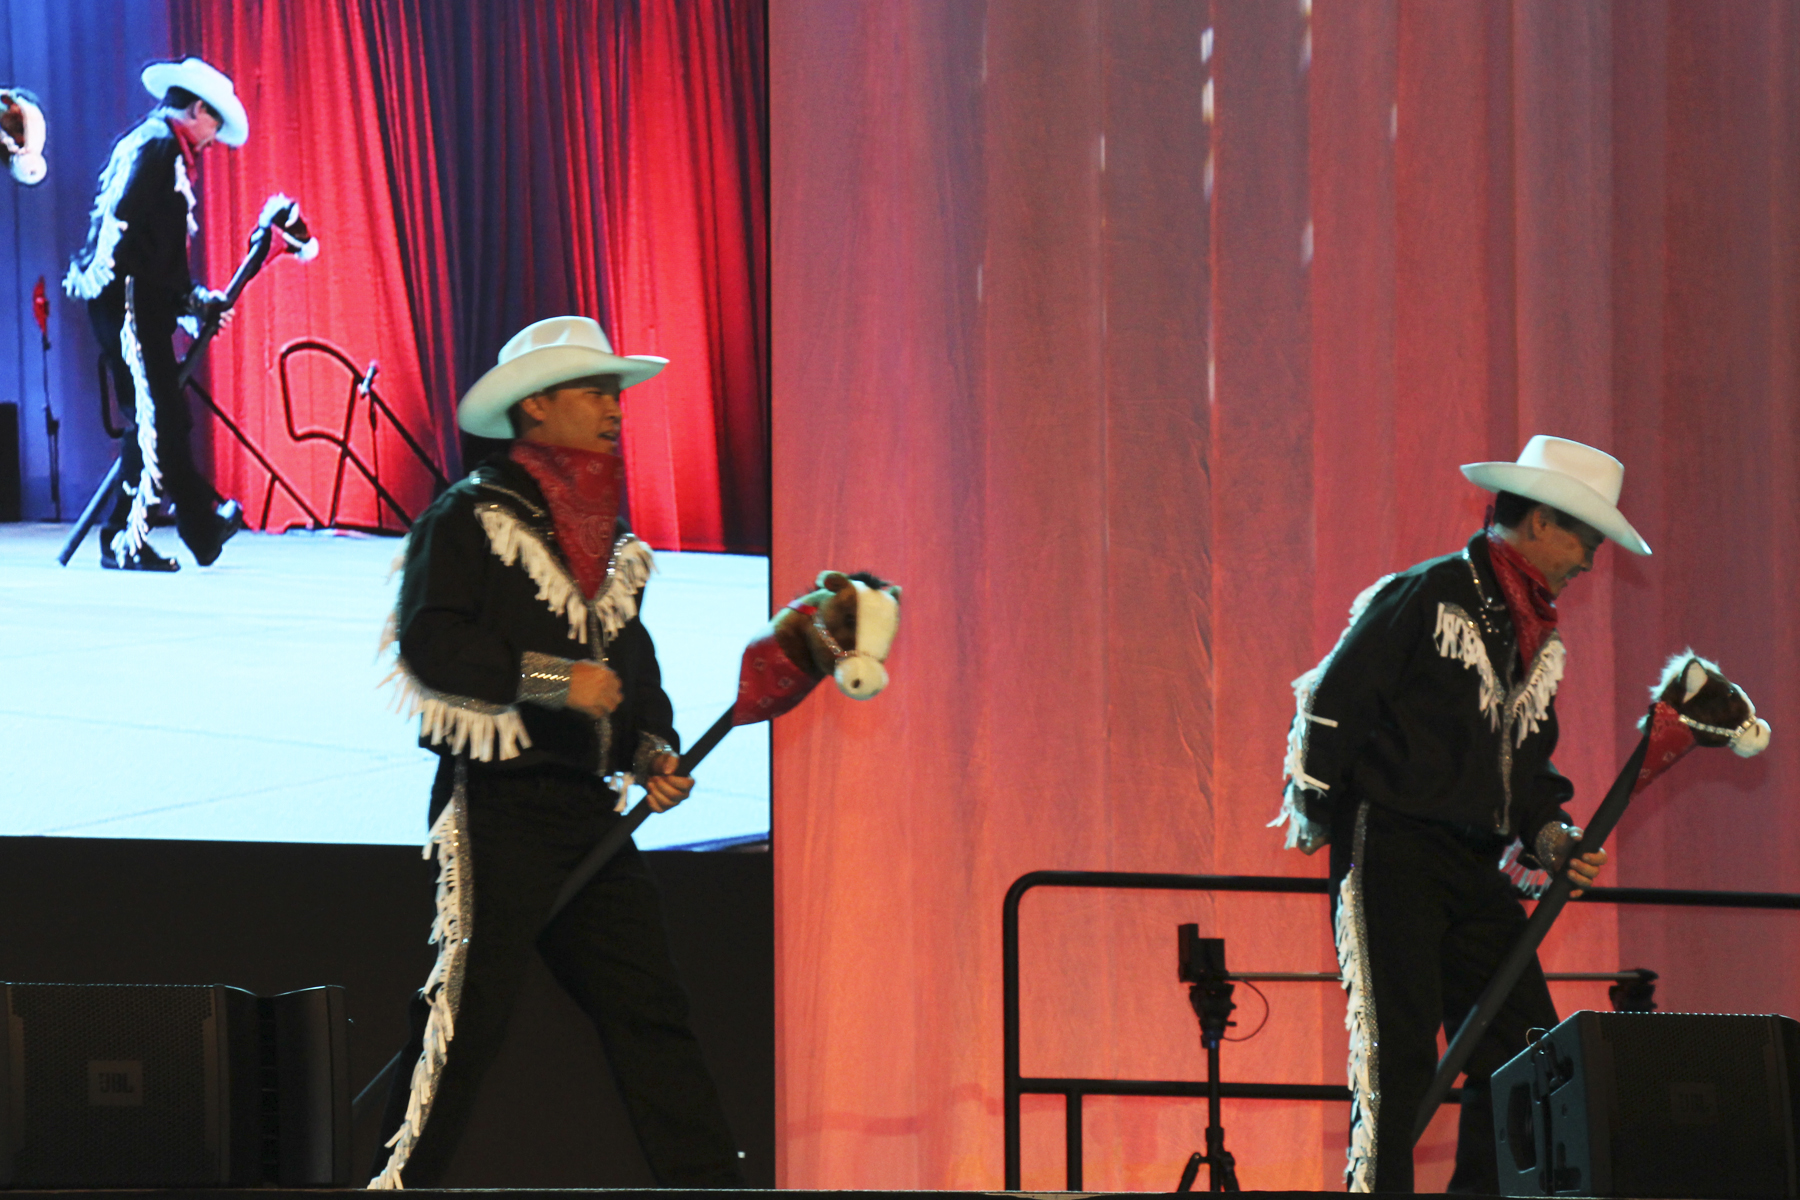 """2016 AN EVENING AROUND THE WORLD: Ride em cowboy! CFS cowboys Joe Young (Deloitte & Touche LLP) & Walter Yamane (Hawaiian Dredging Construction Company, Inc.) ride their """"horses"""" on stage!"""